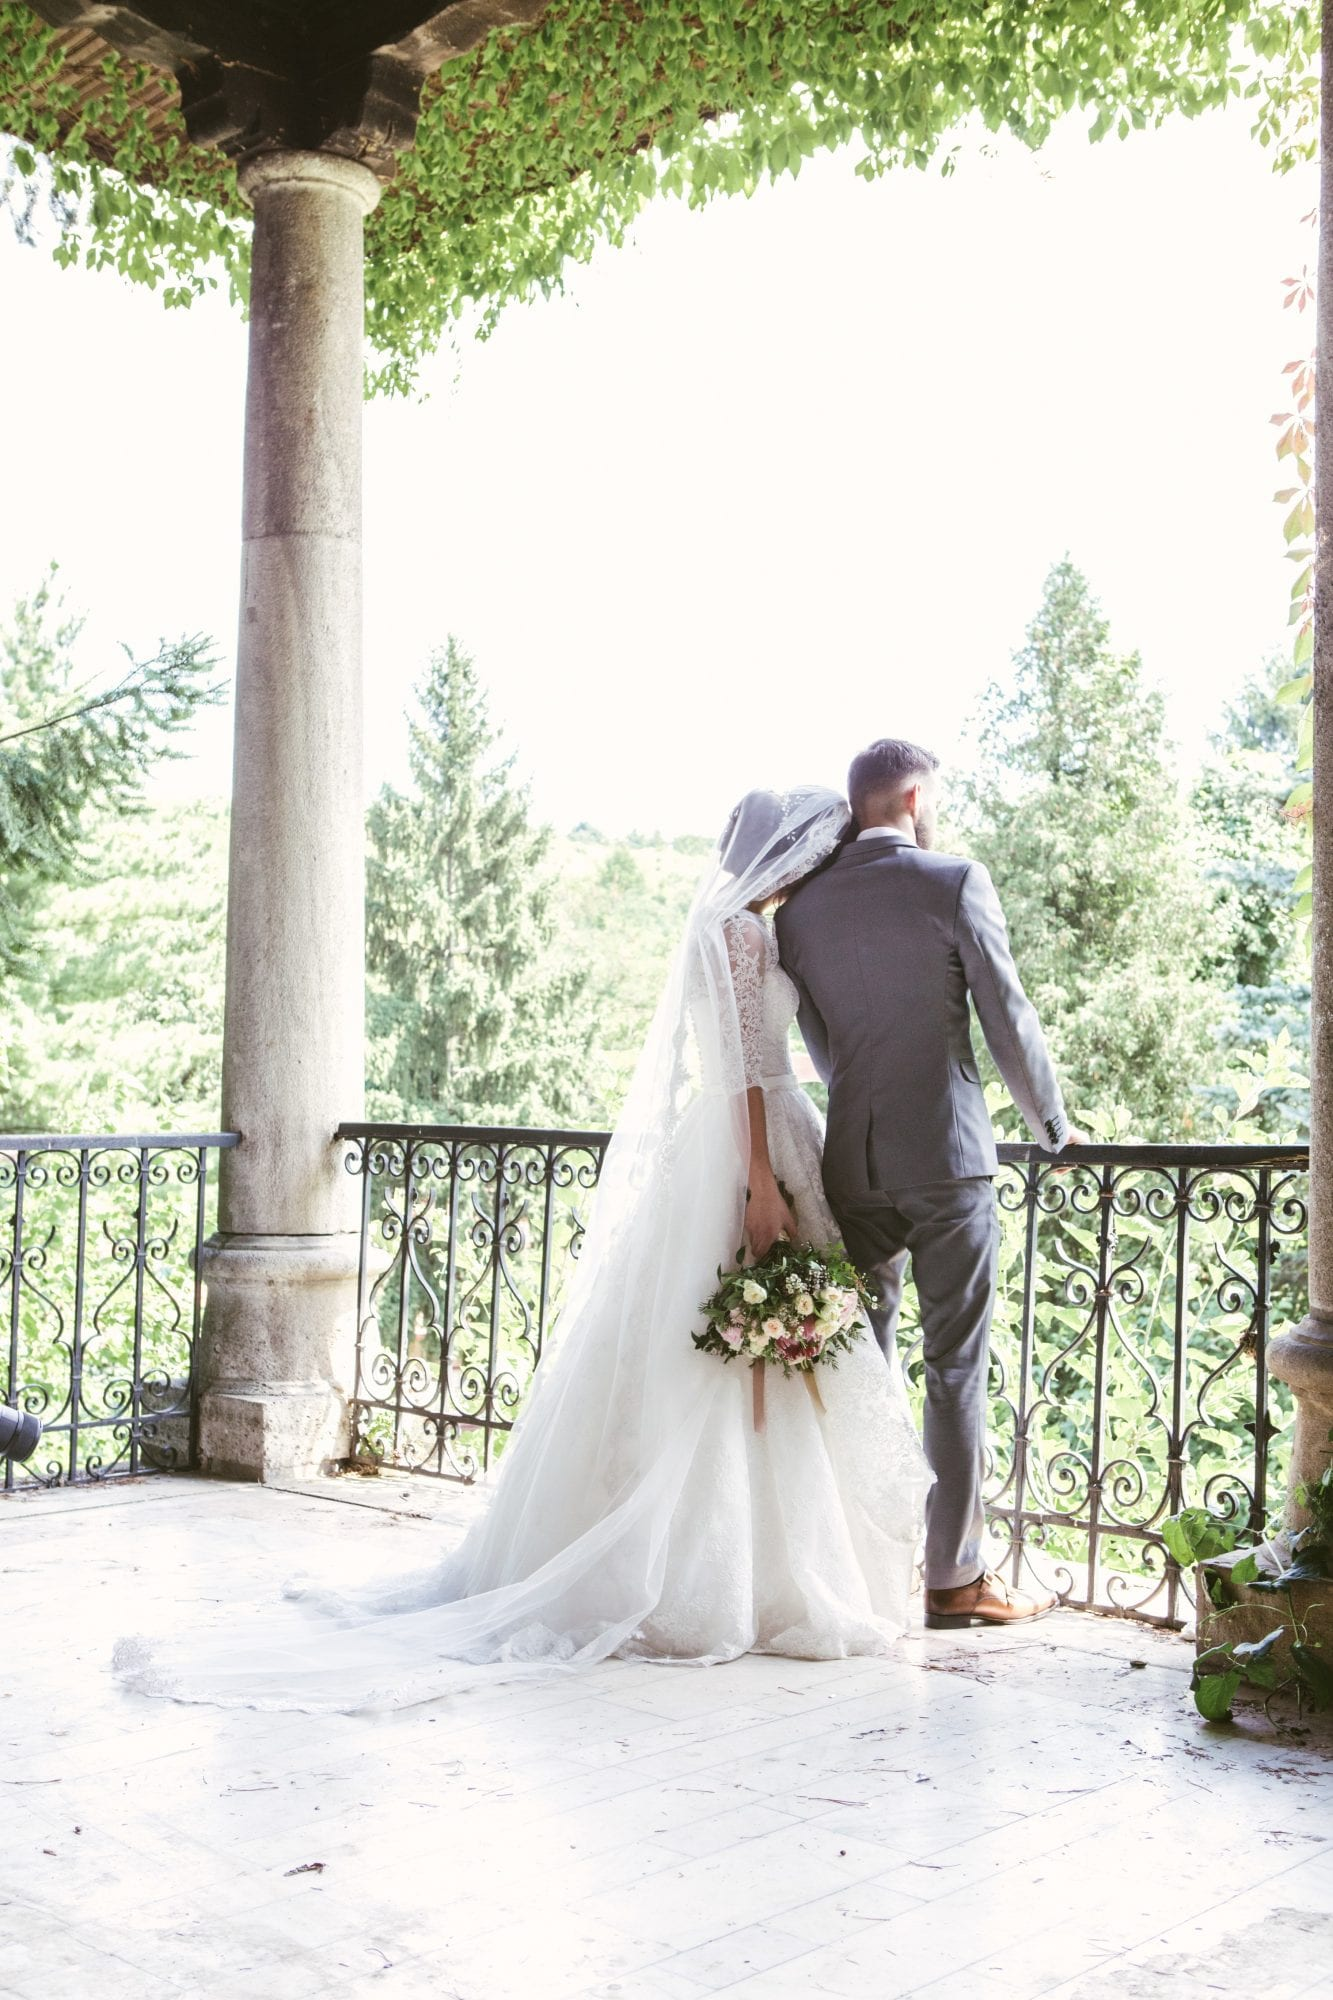 Things to Consider if You're Planning a Destination Wedding